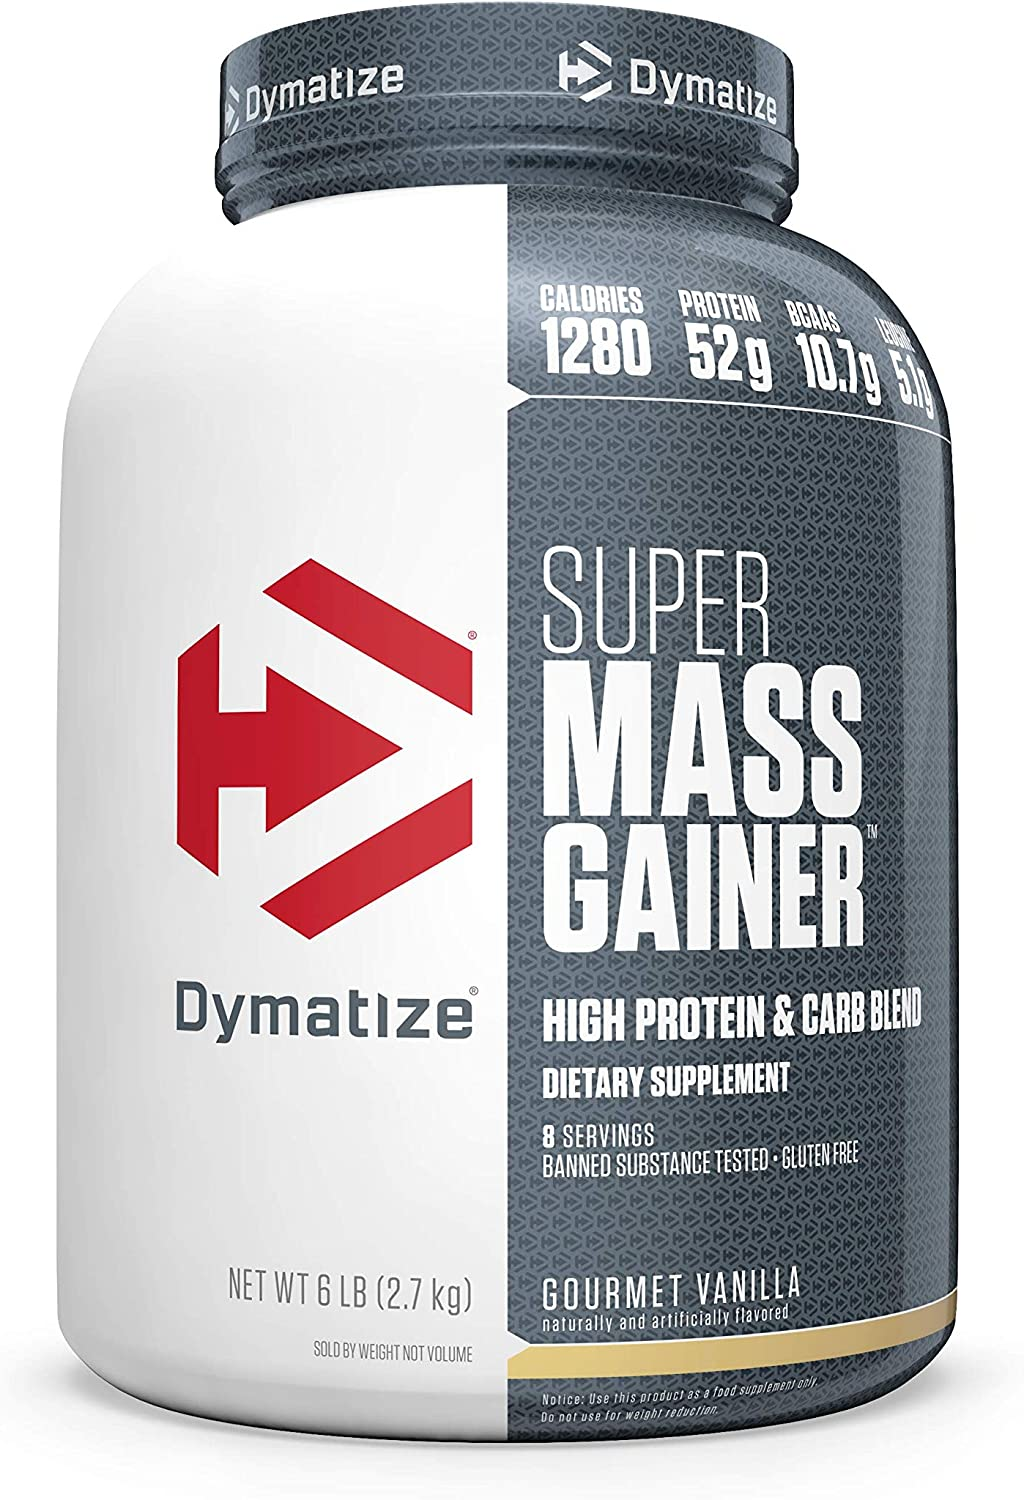 Dymatize Super Mass Gainer Protein Calories Powder 1280 Max 54% New product! New type OFF P 52g